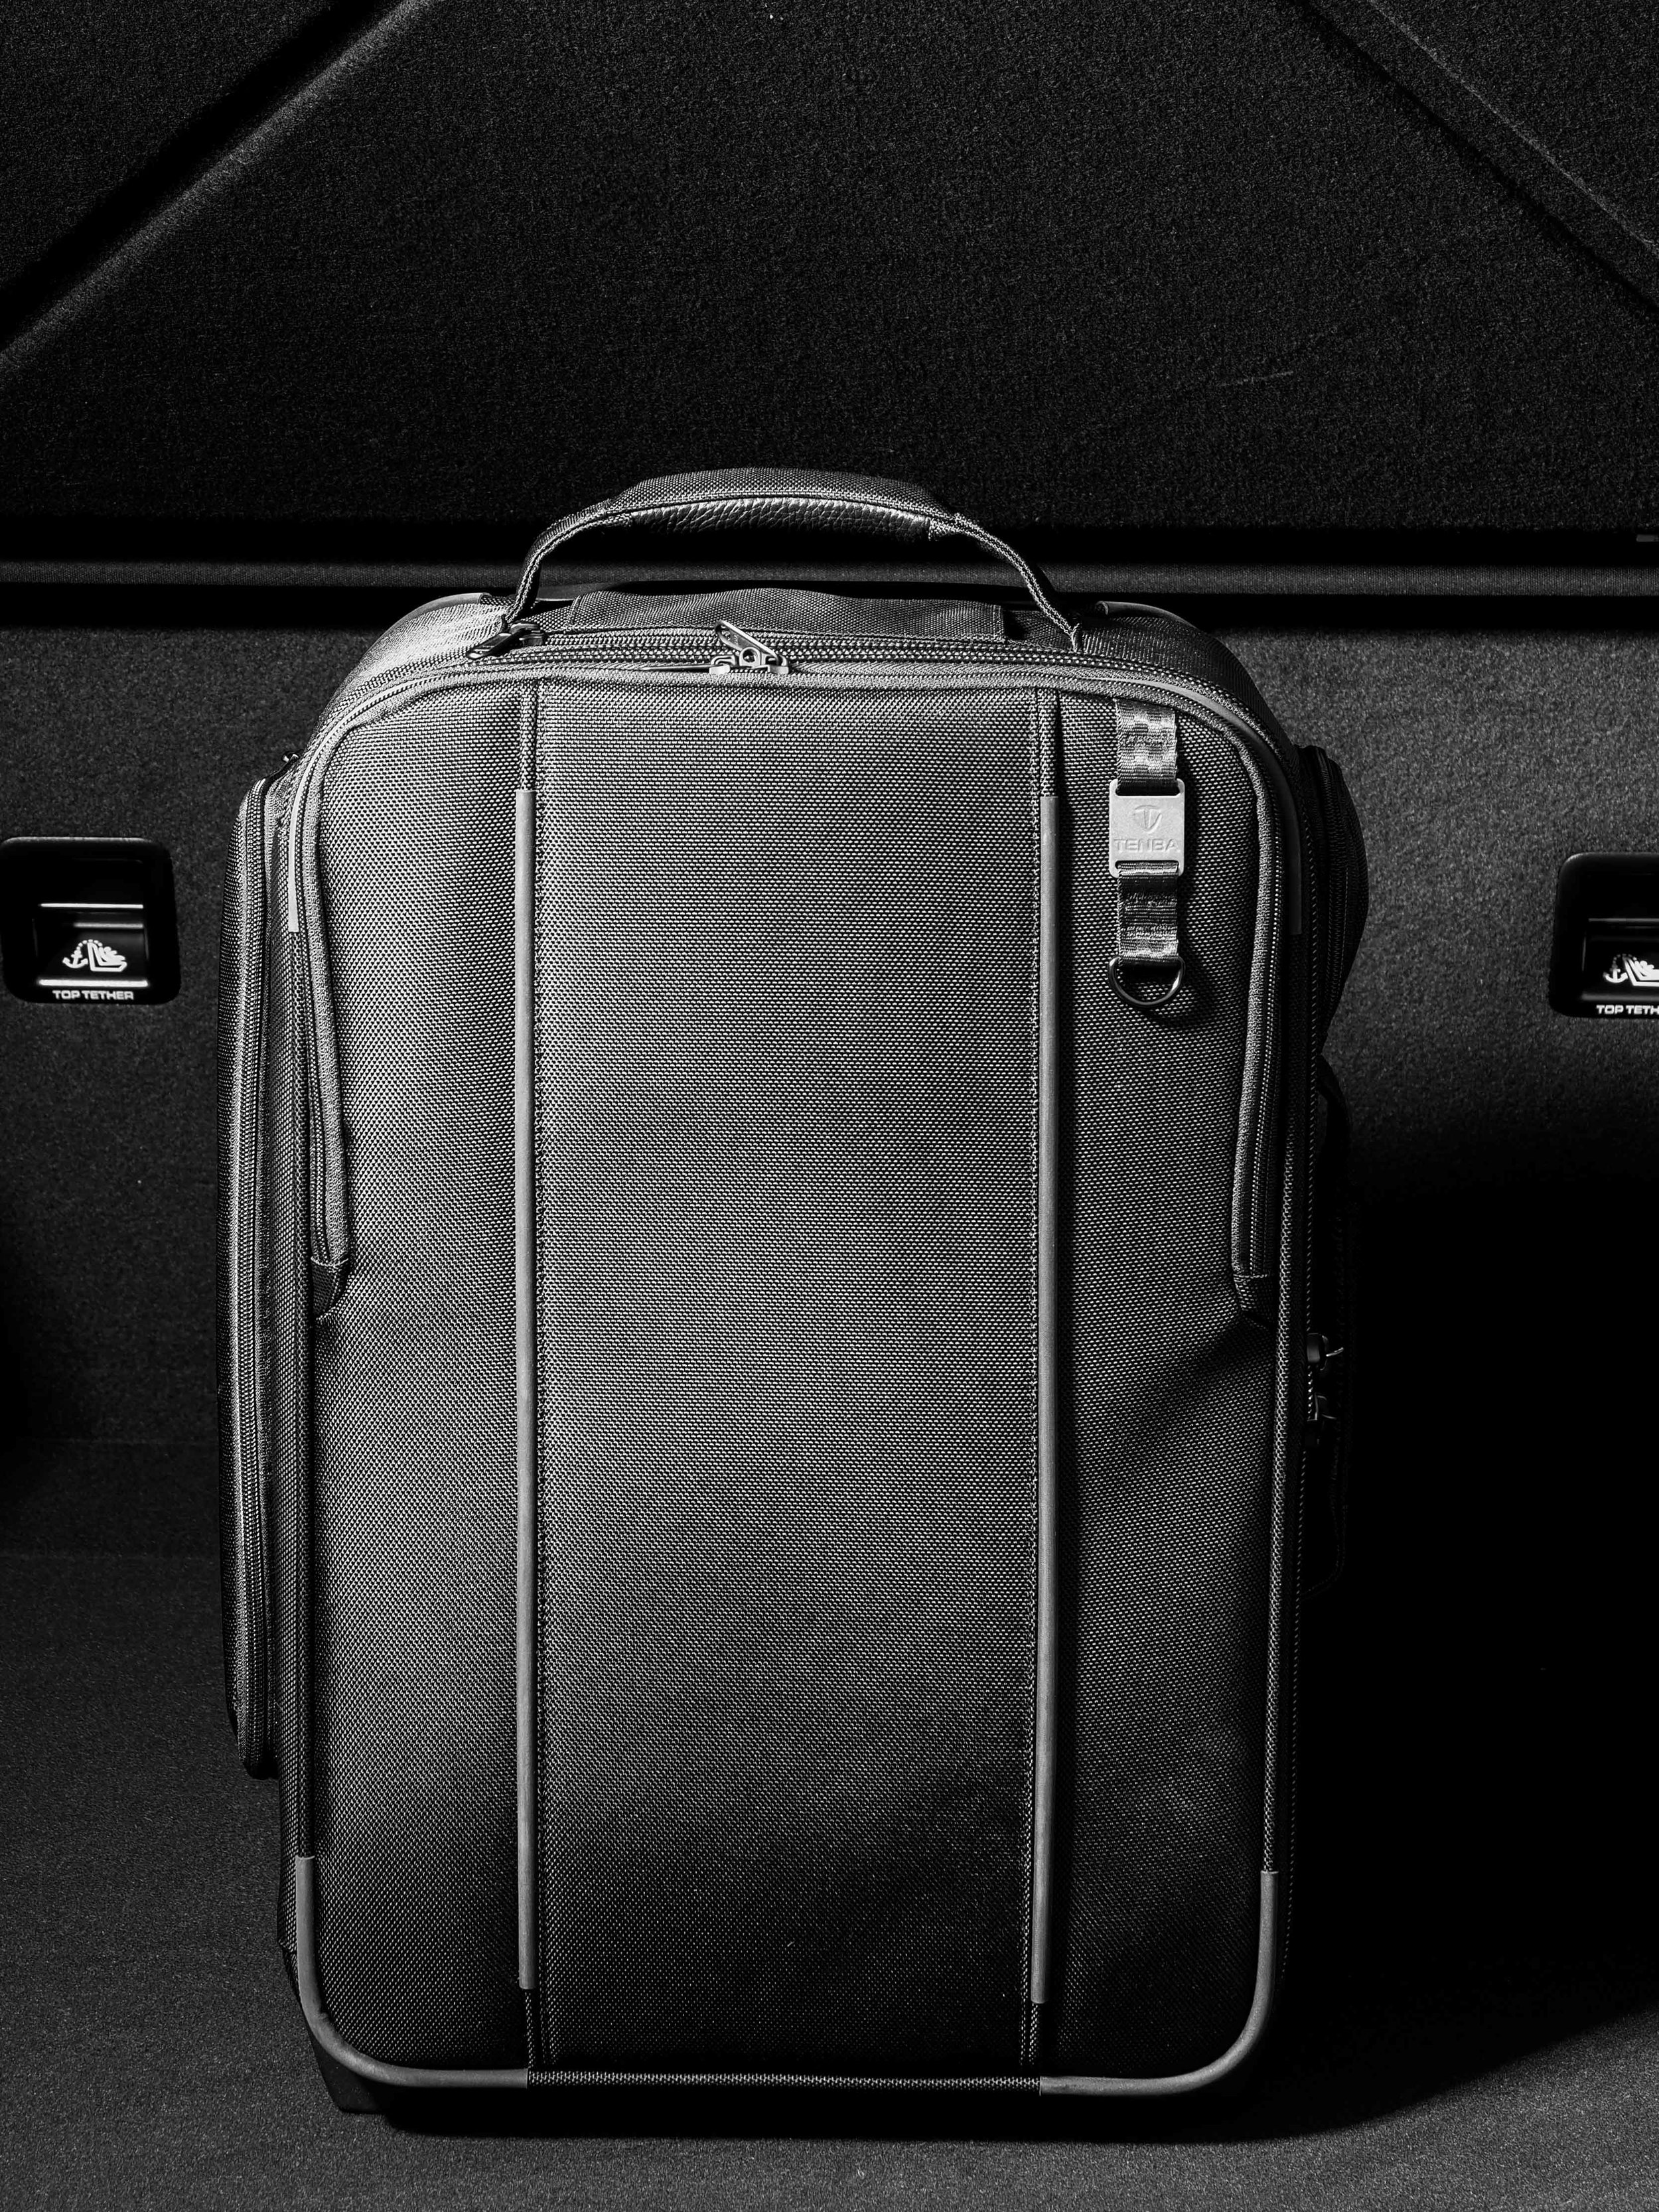 First Class Travel - Elegance and ProtectionTenba Roadie 21 Roller